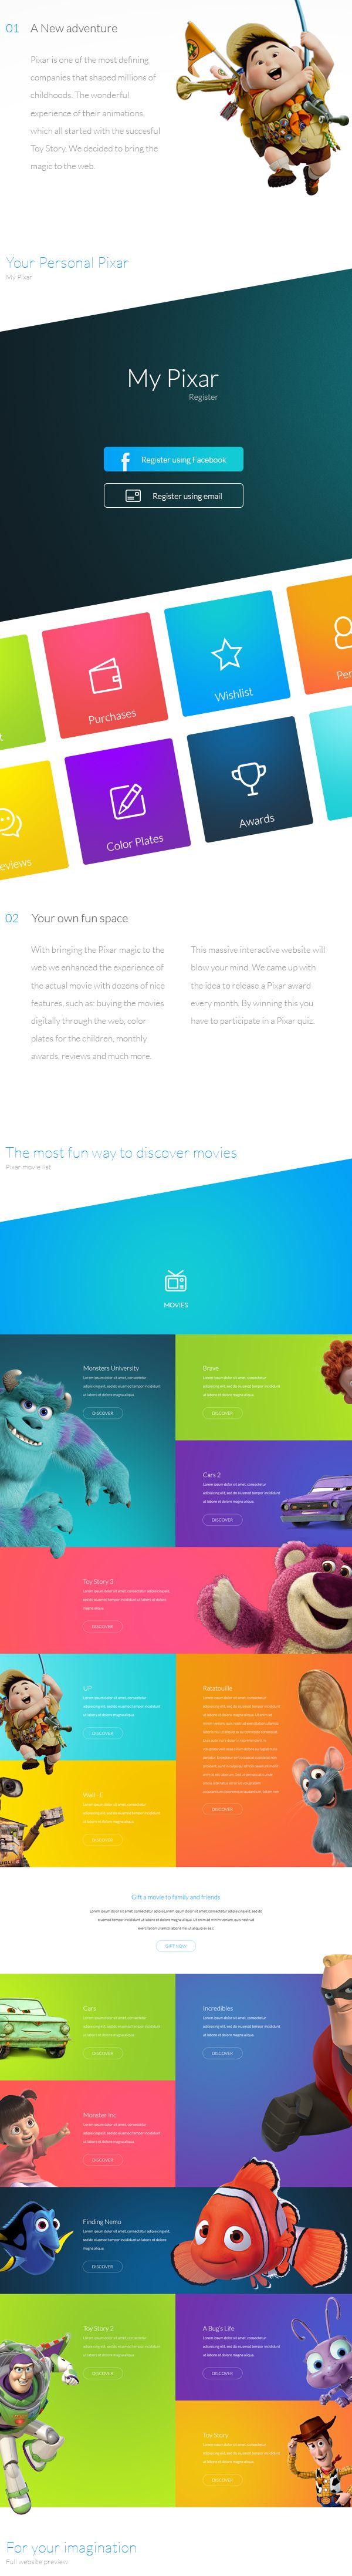 Pixar on Behance